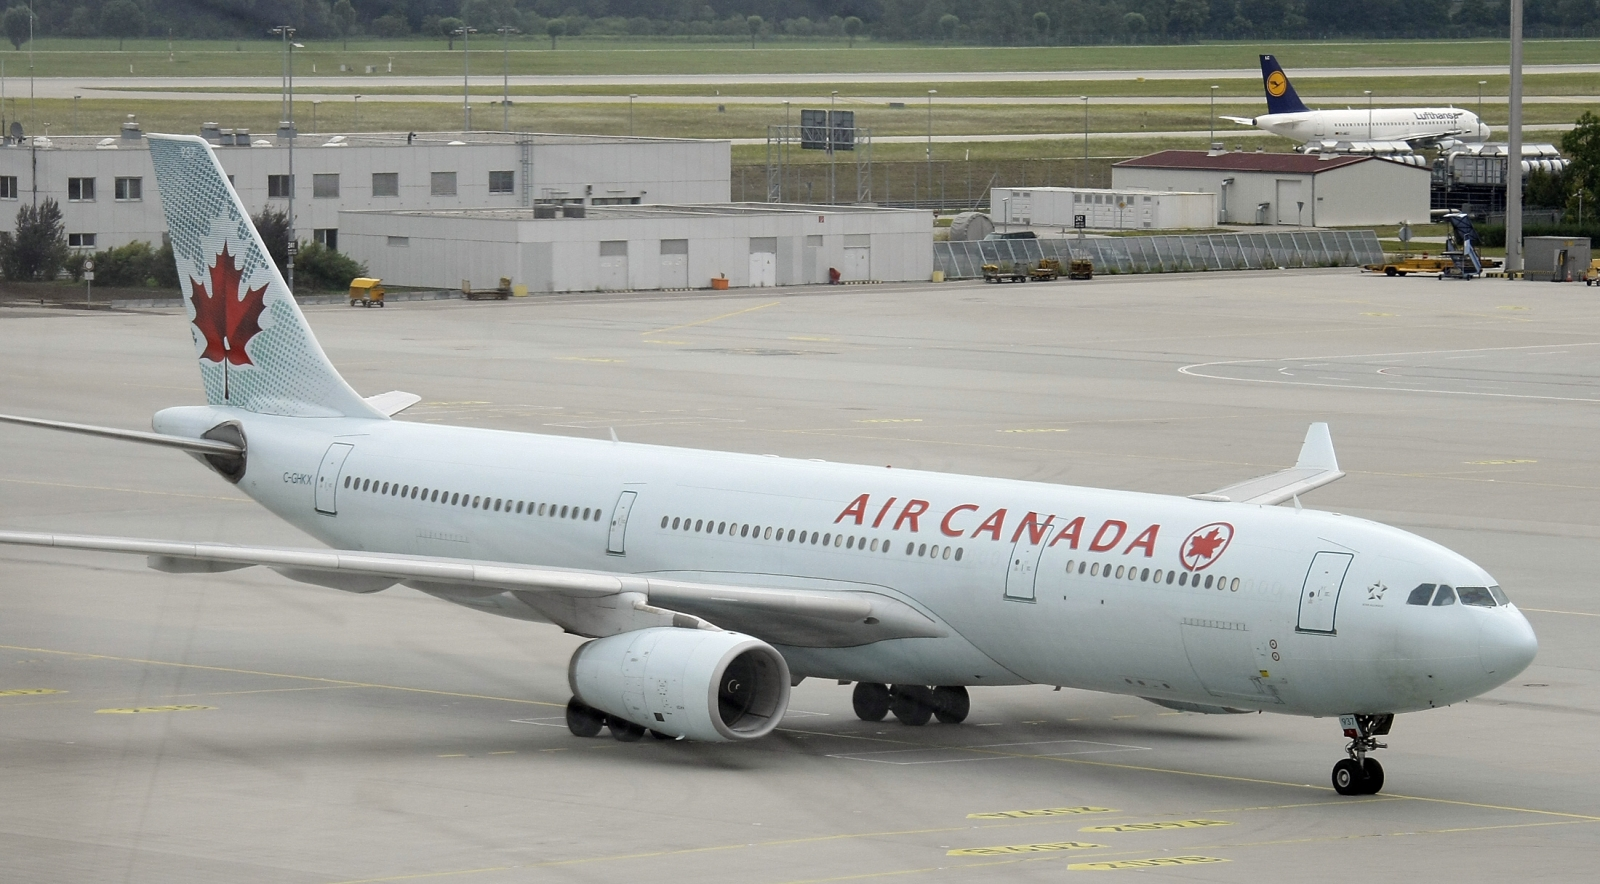 Air Canada passenger flight with 137 people aboard ...